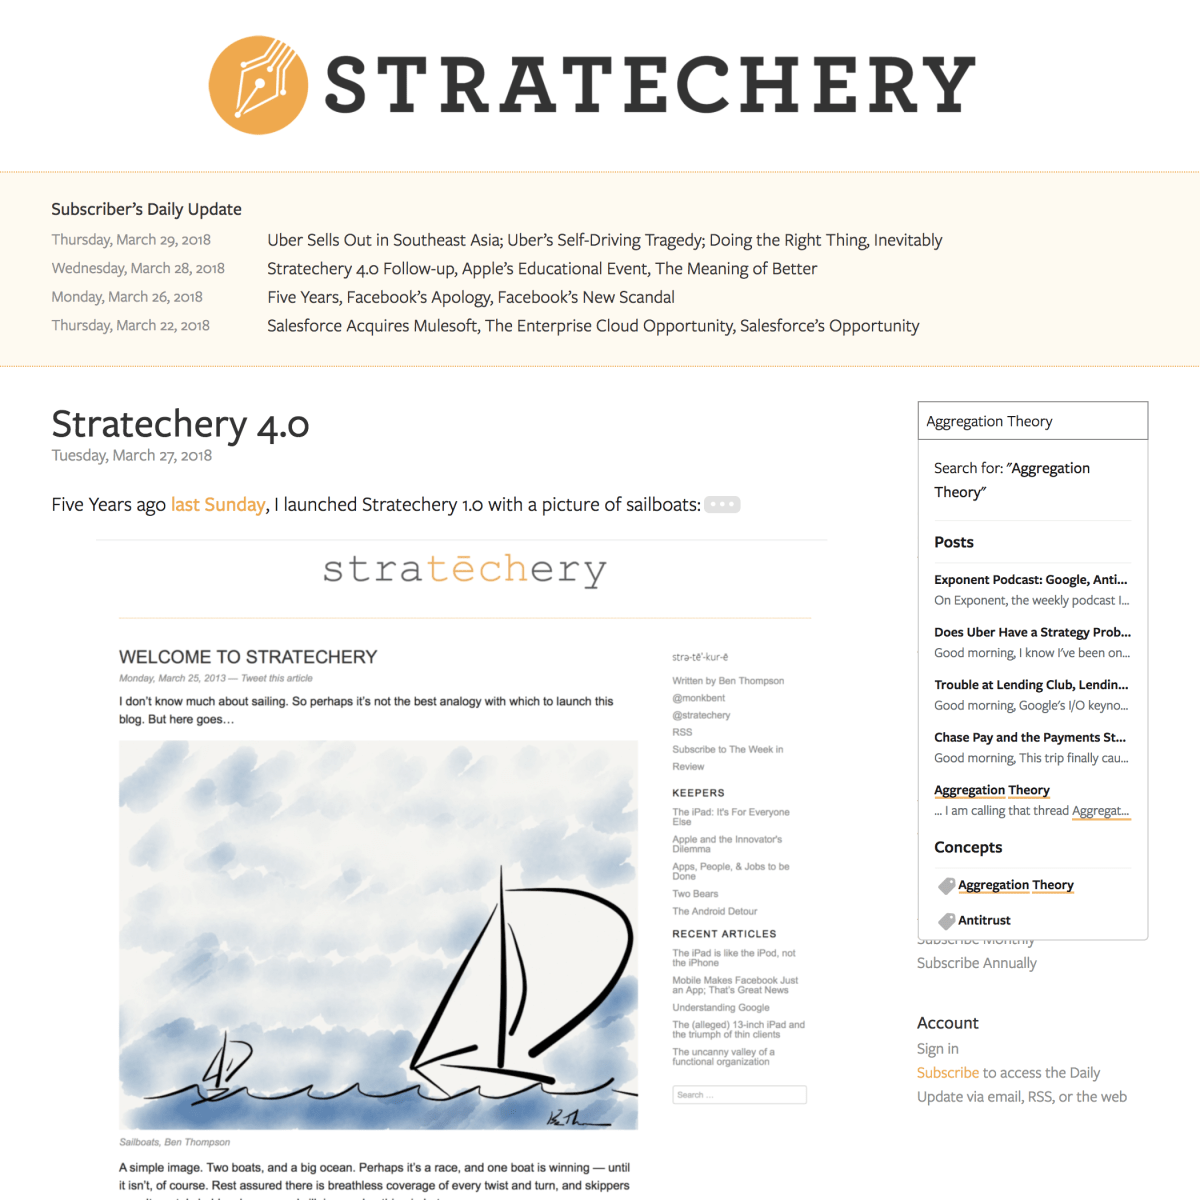 Stratechery 4.0: Not Just Another WordPress Site